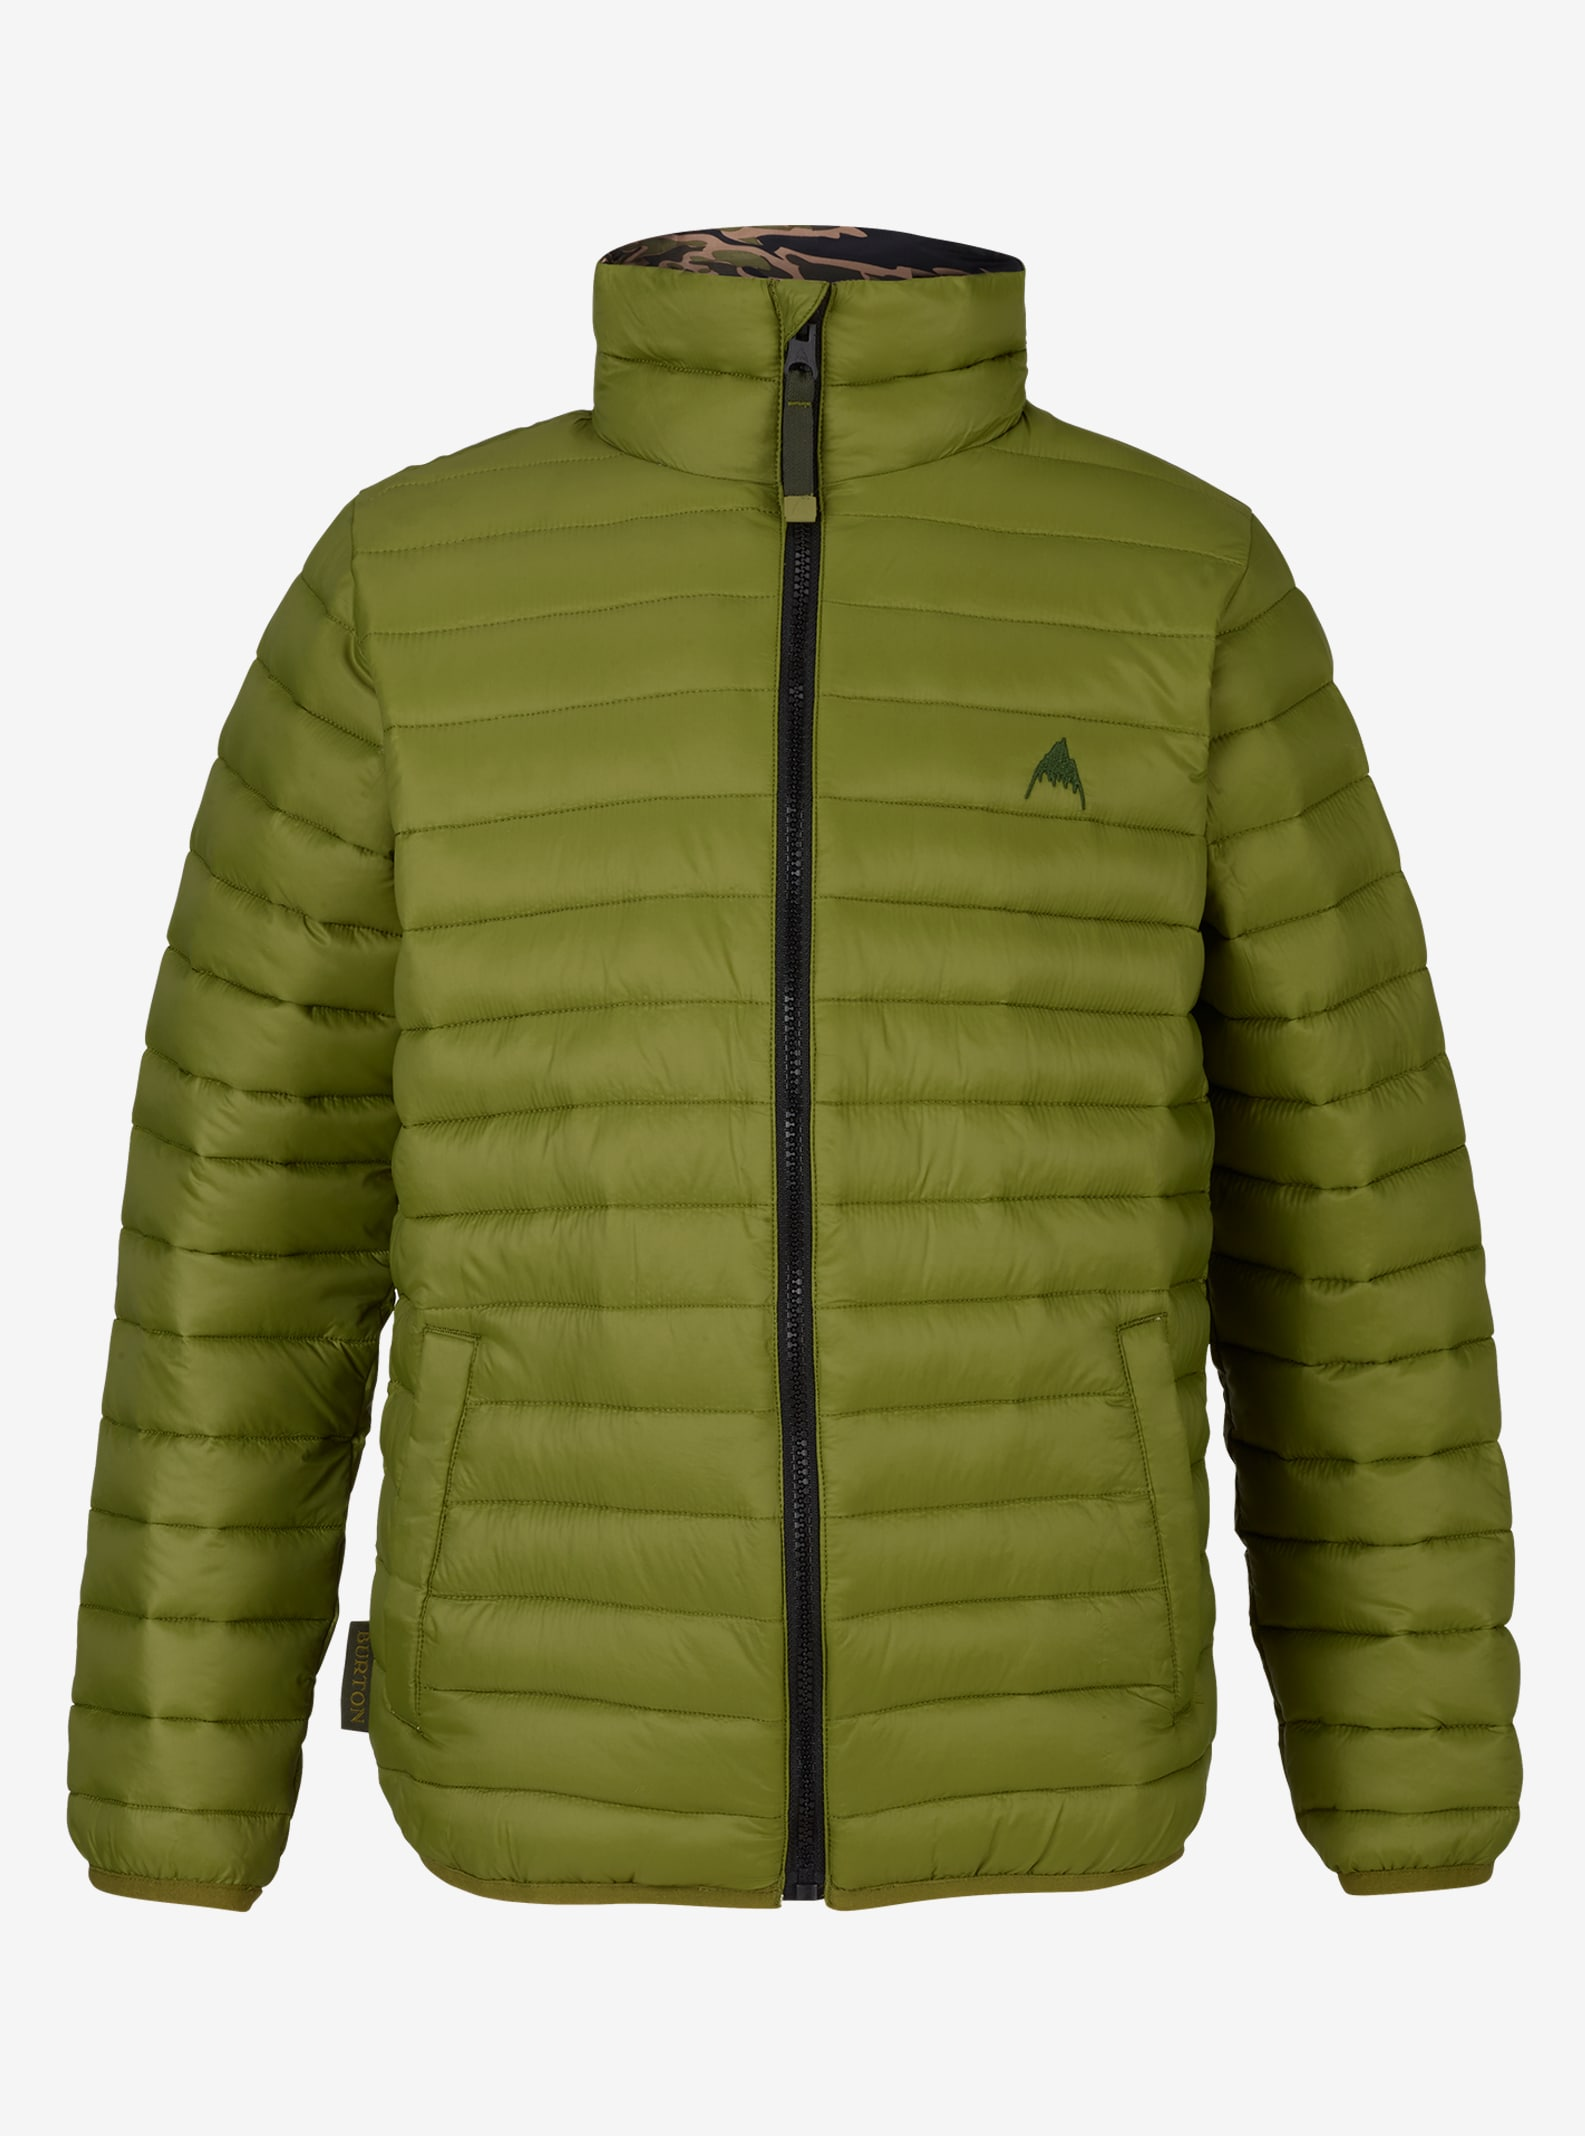 Kids' Burton Reversible Flex Puffy Jacket shown in Olive Branch / Olive Branch Beast